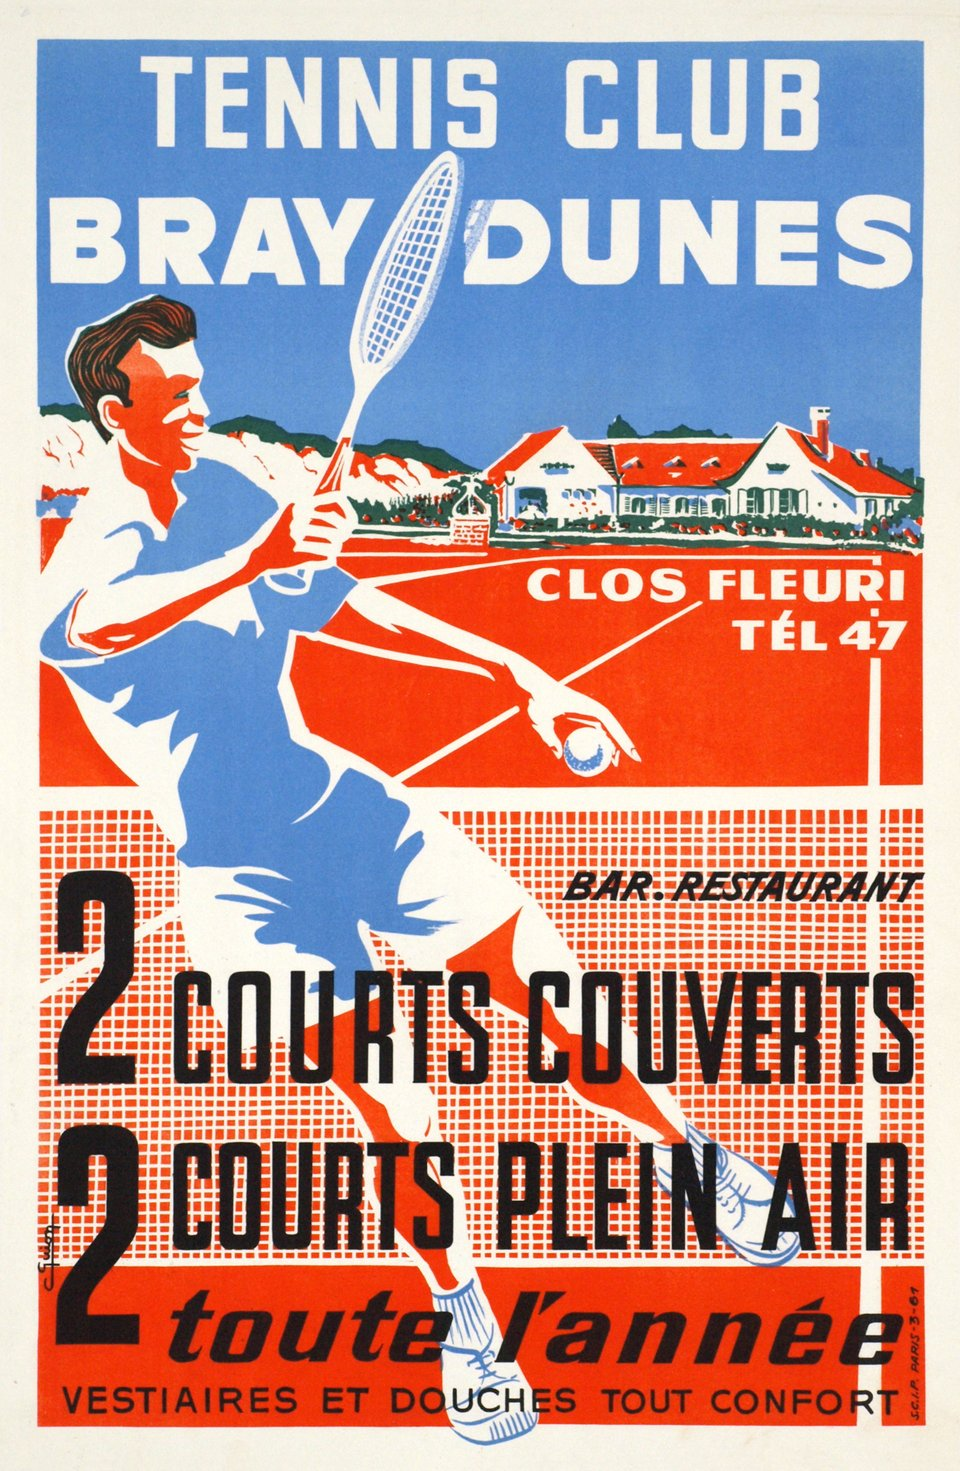 Tennis Club Bray Dunes – Vintage poster – C. GUION – 1950